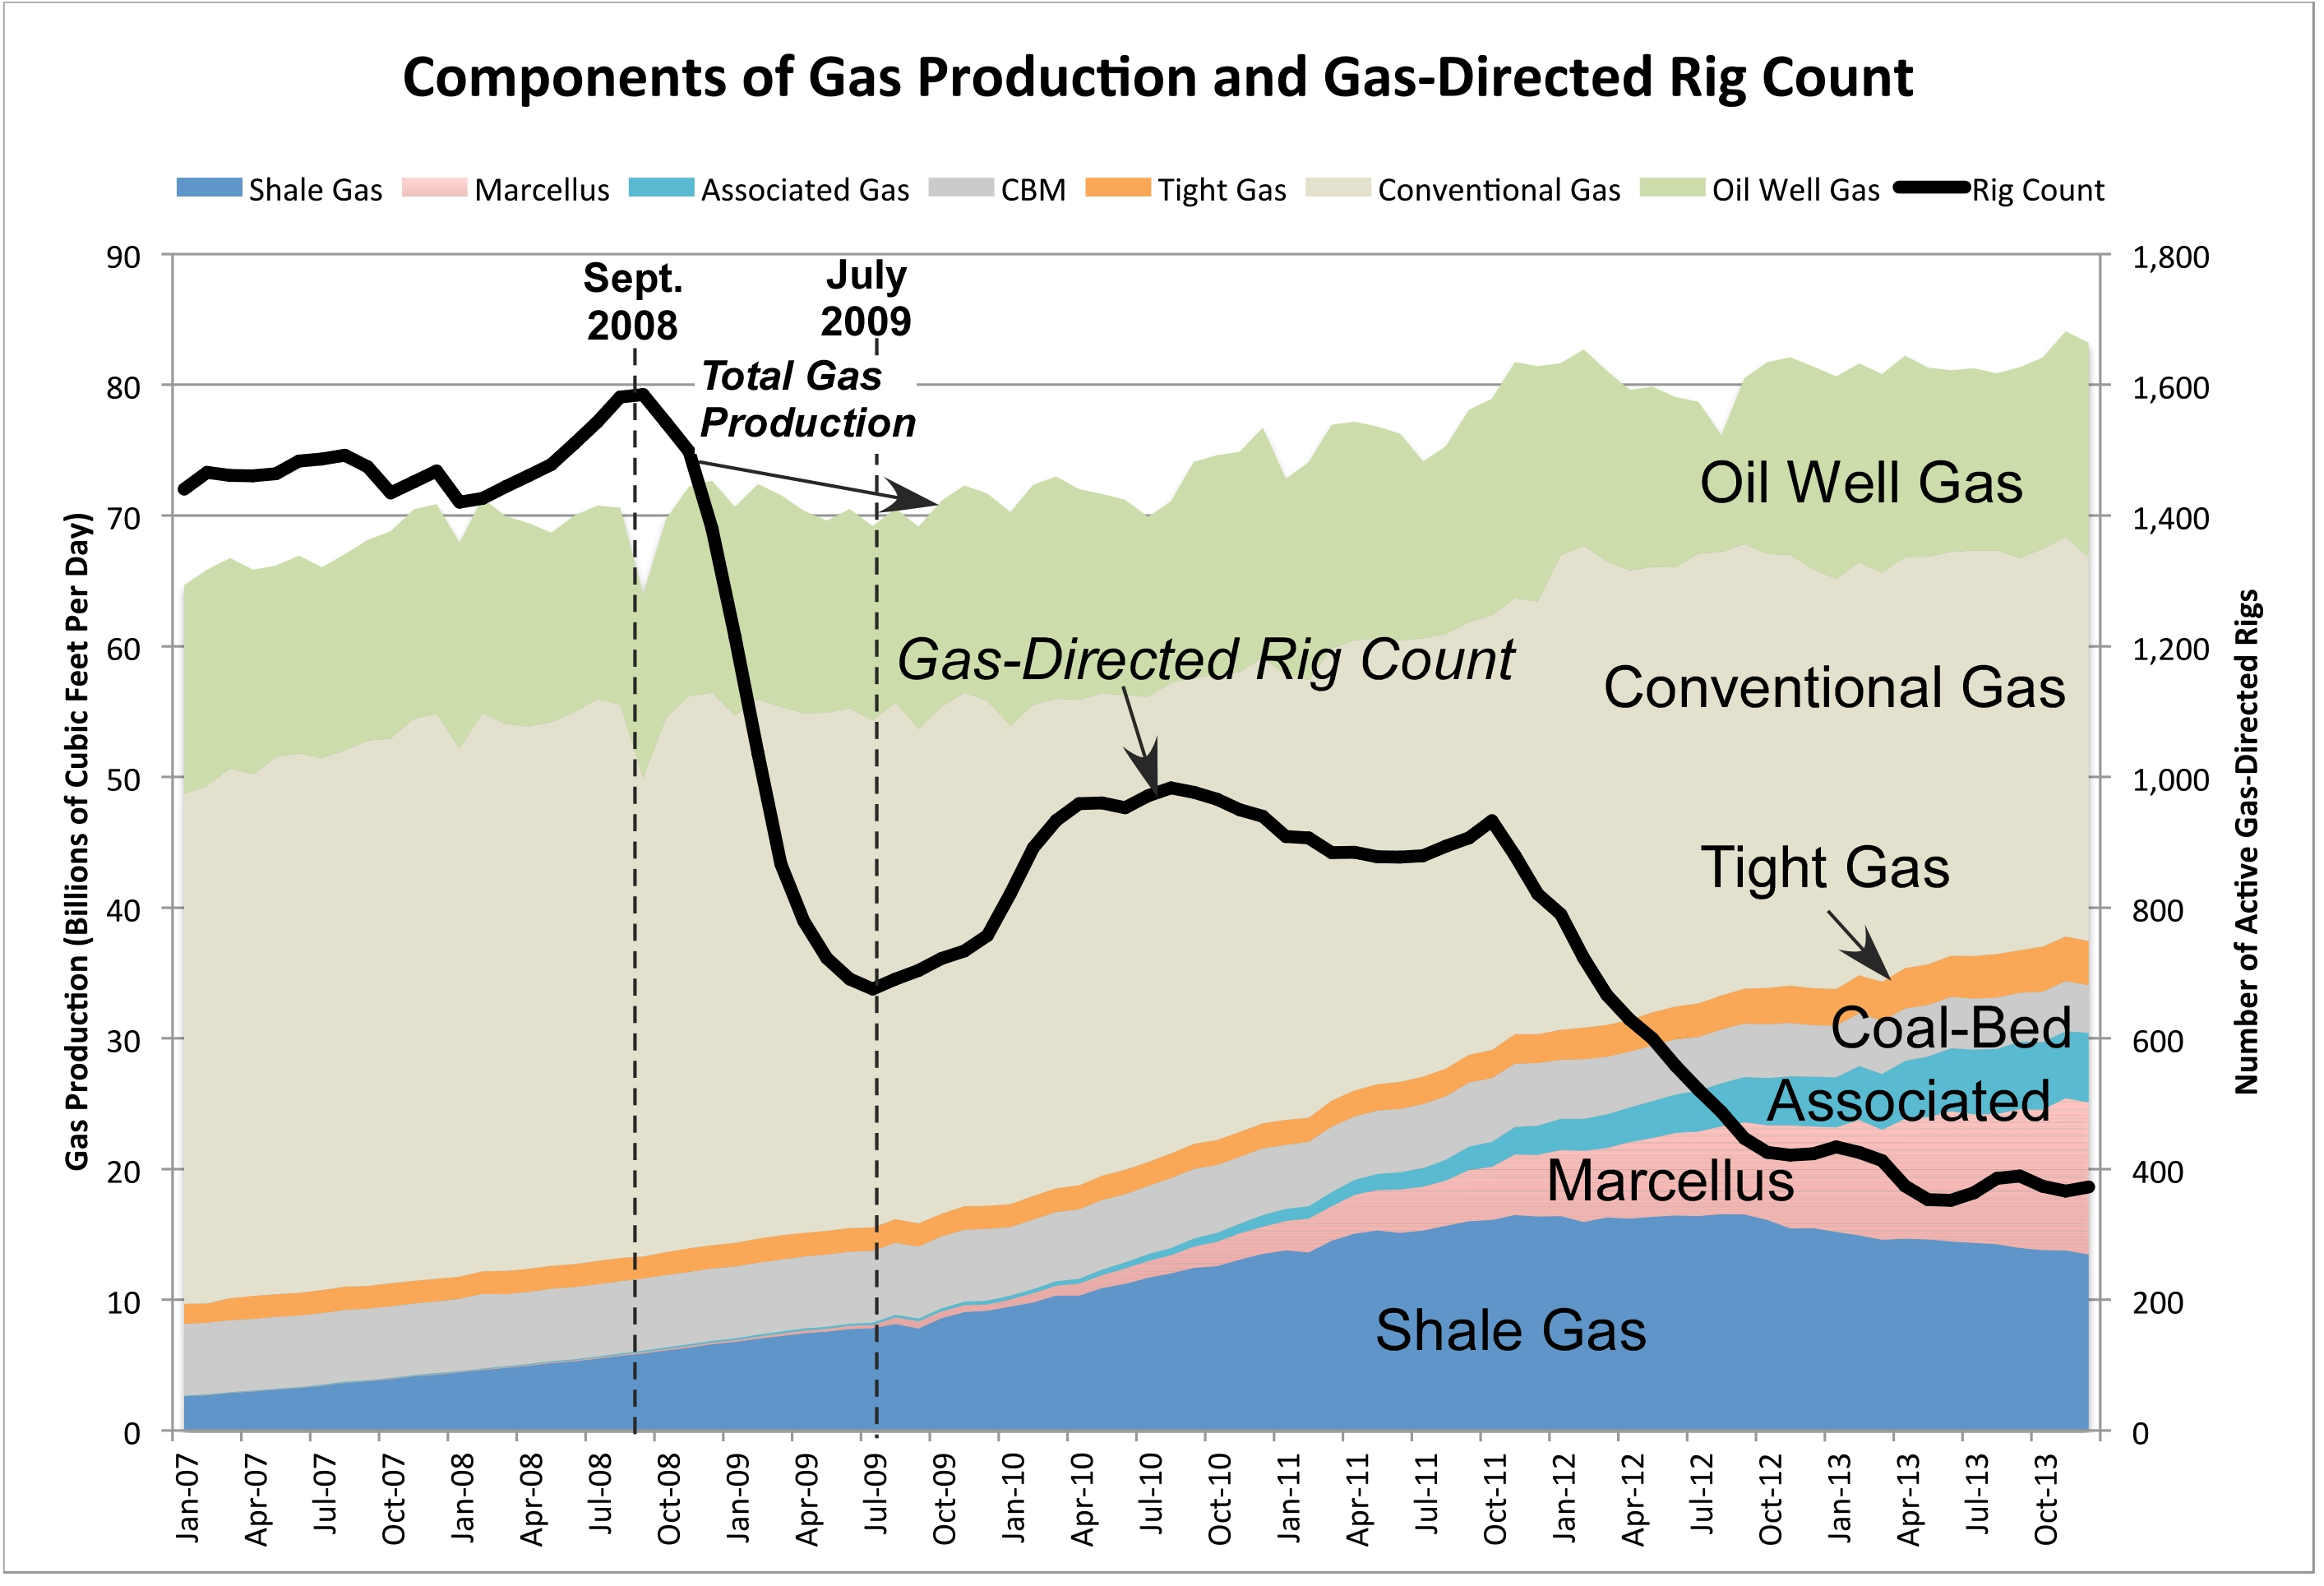 Chart All Components Gas Rig Count 8 Mar 2015